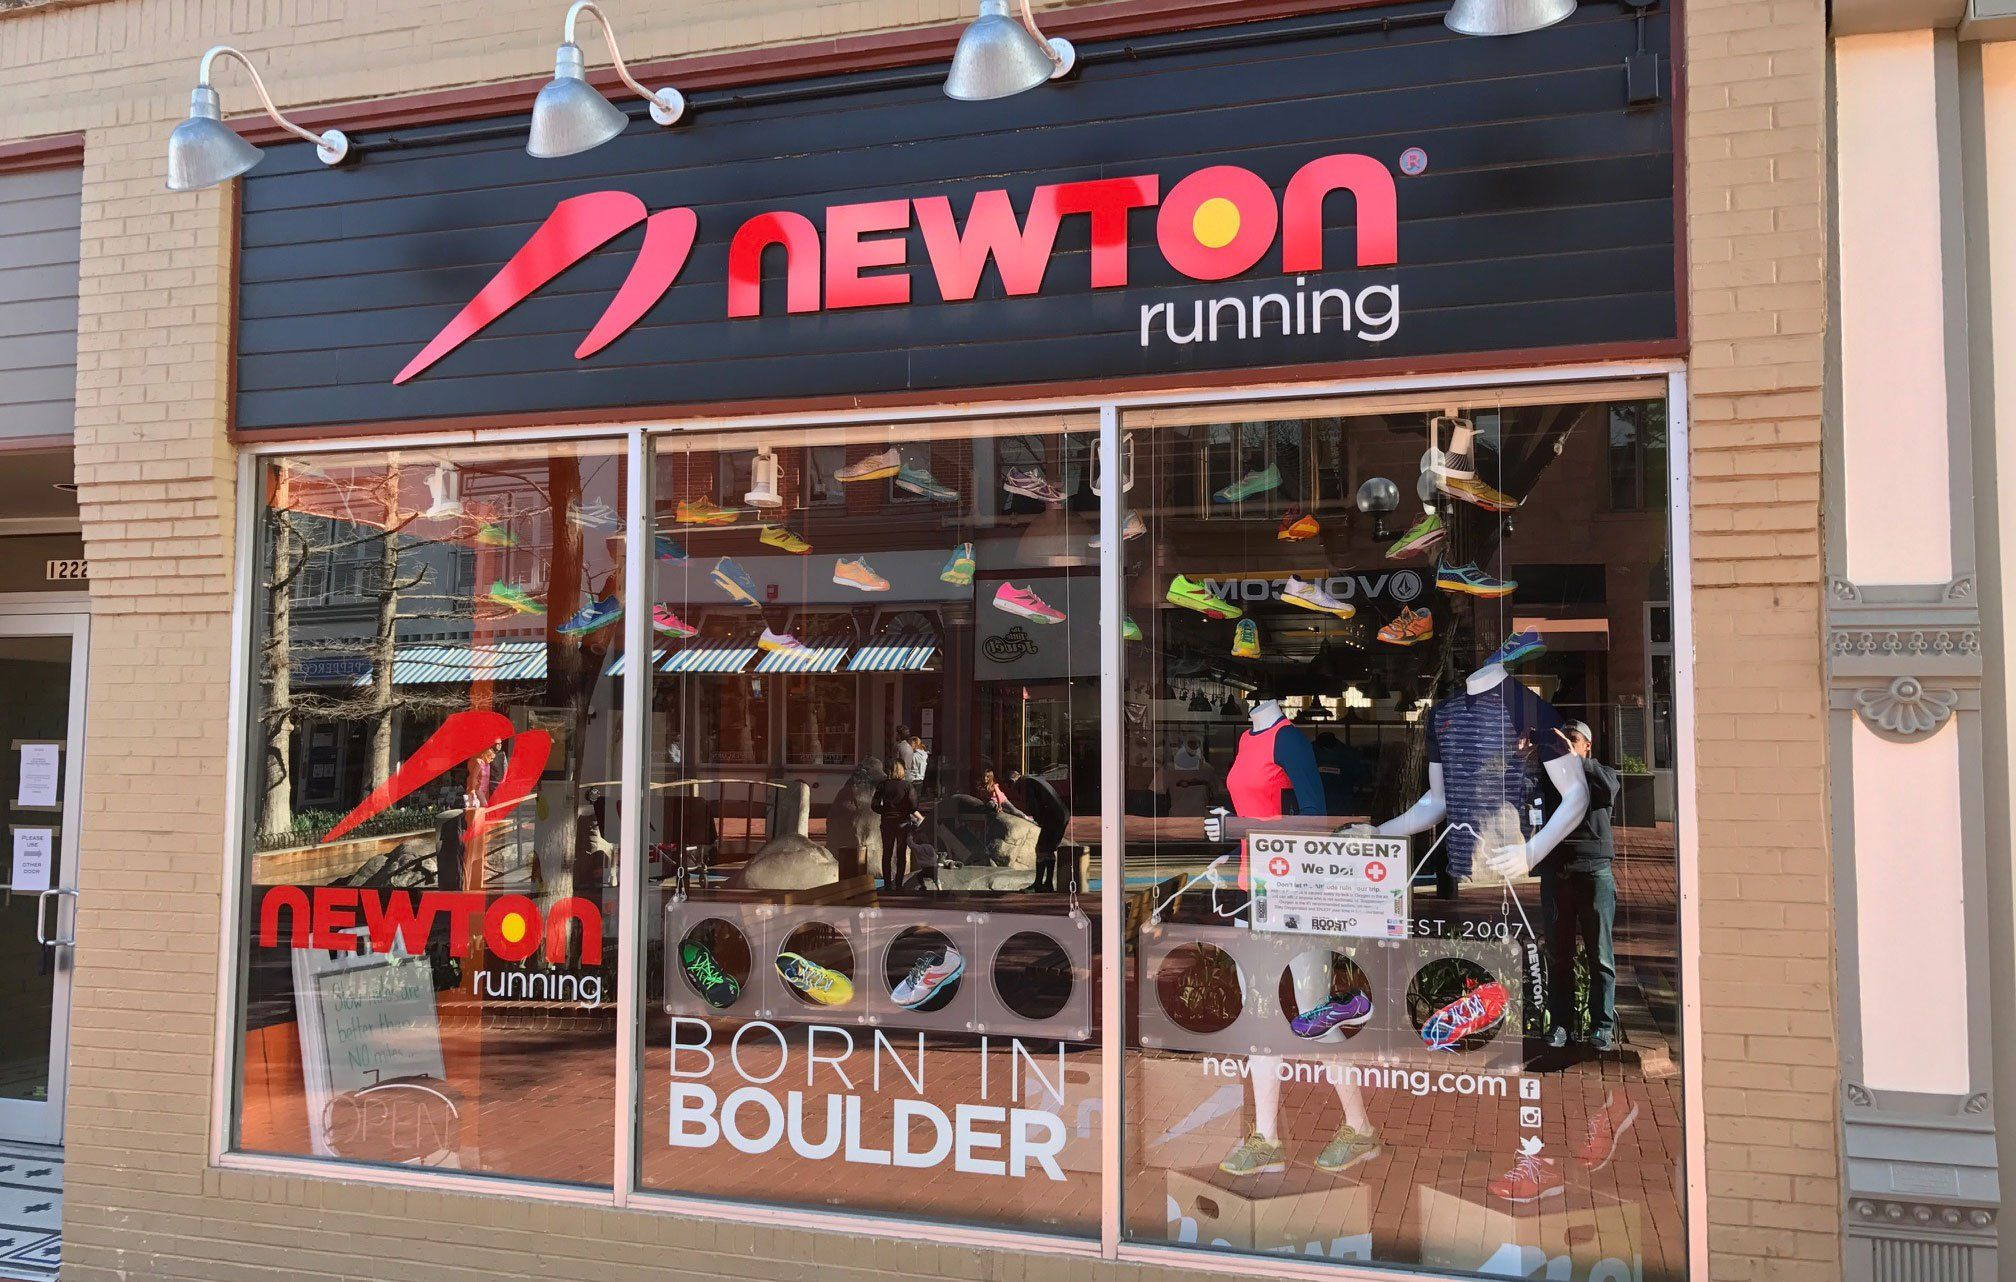 Newton Running Reorganizes Without Its Original Visionary